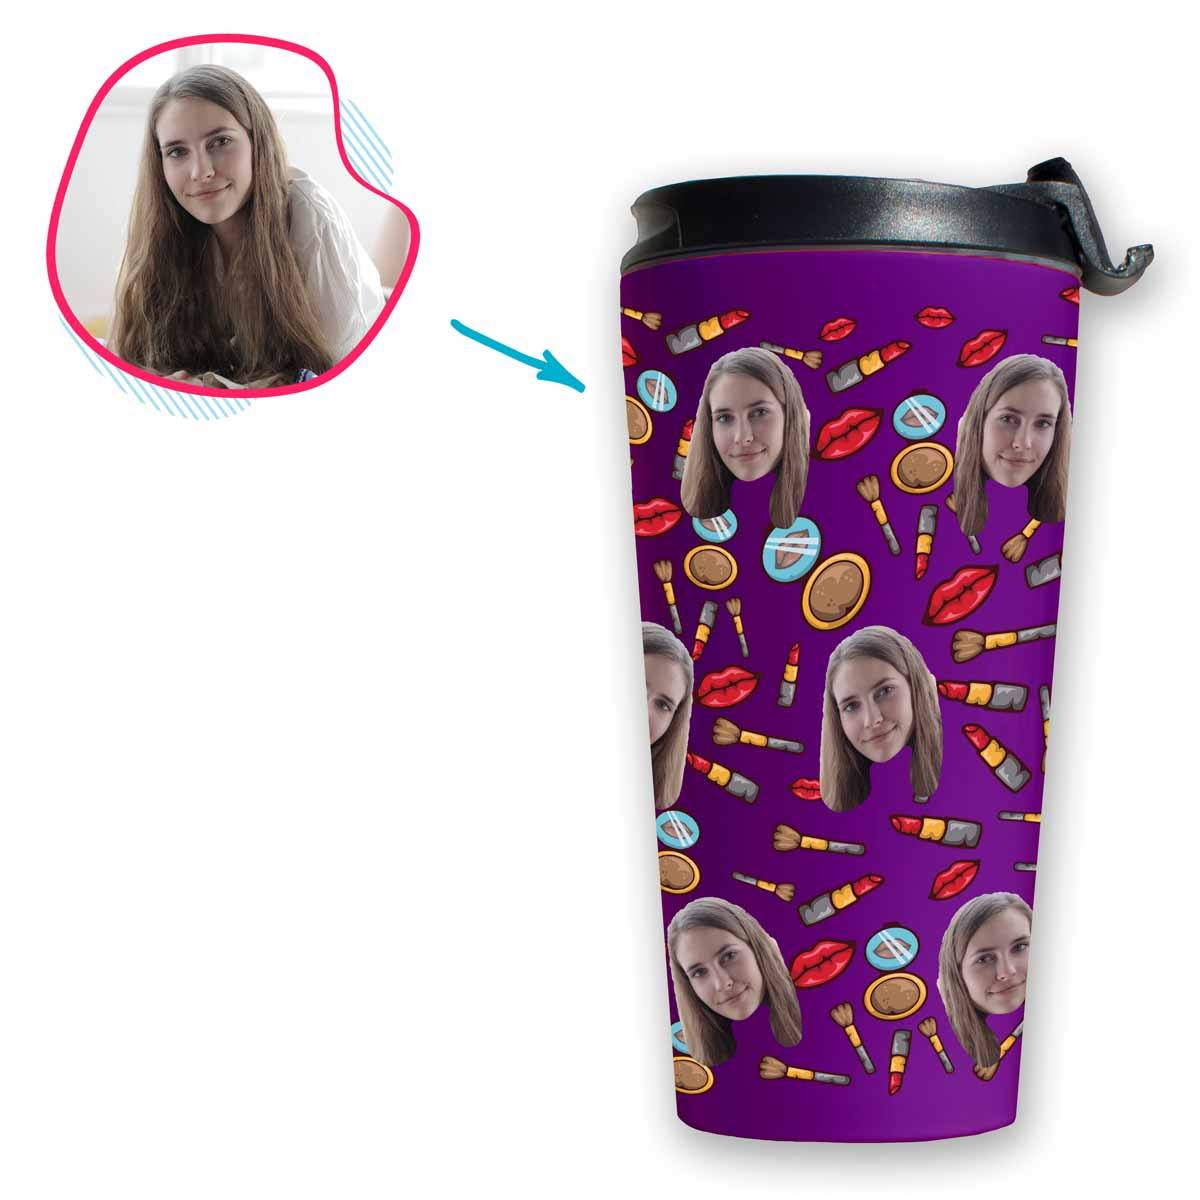 Purple Makeup personalized travel mug with photo of face printed on it